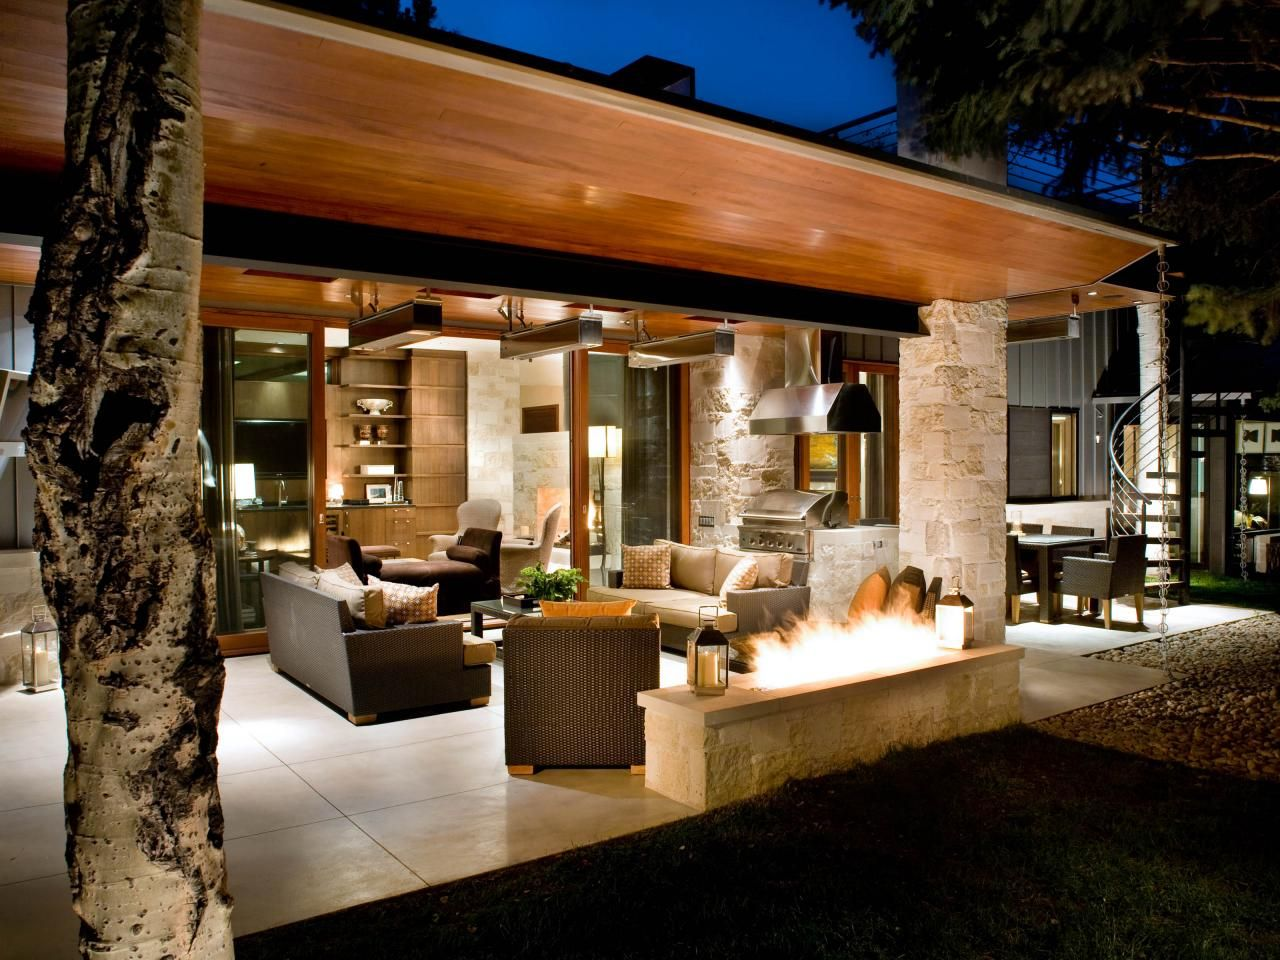 Outdoor Kitchen Design Is As Much About Performance As It Is About Style Whether You Prefer Modern C Outdoor Kitchen Lighting Outdoor Kitchen Ranch Style Home